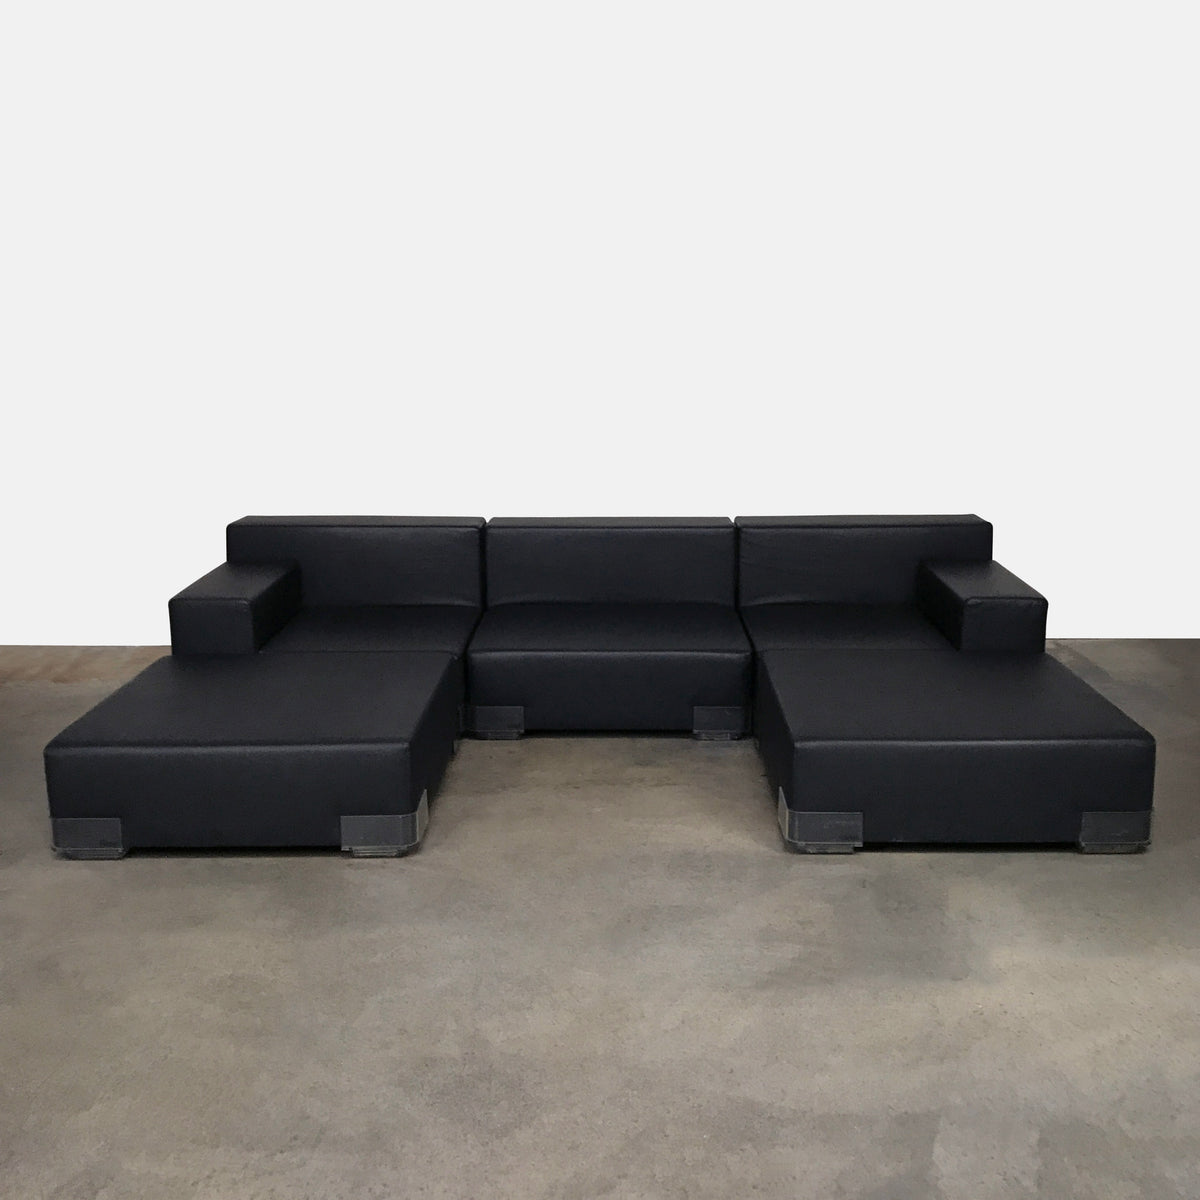 Kartell Black Neoprene Plastics Vinyl Sectional by Piero Lissoni